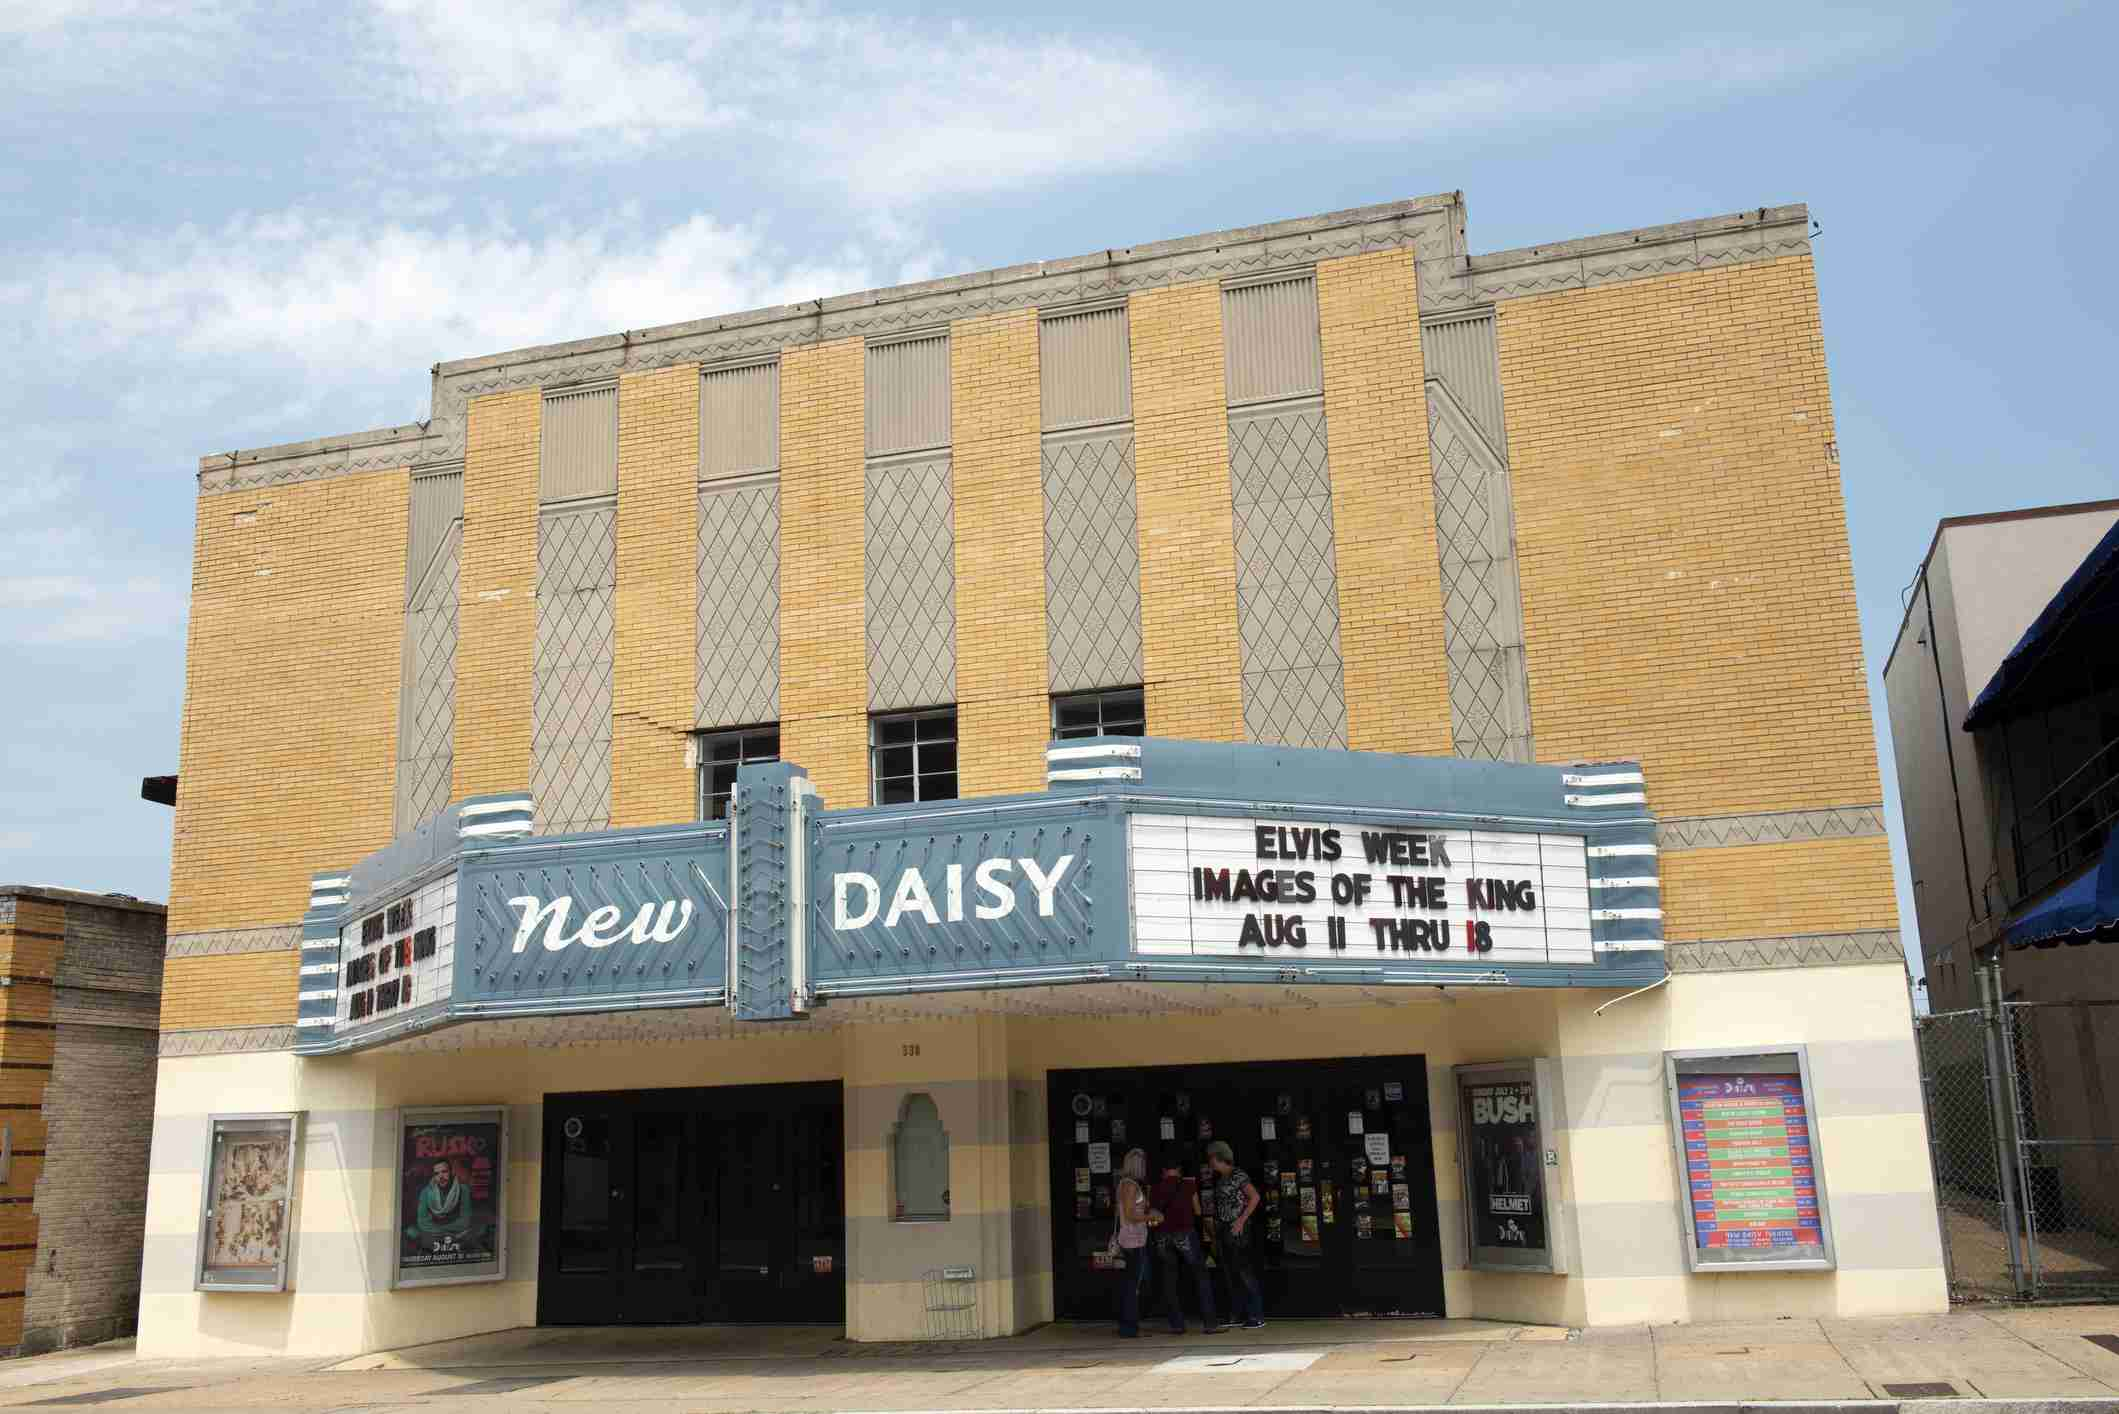 New Daisy Theater on Beale Street in downtown Memphis